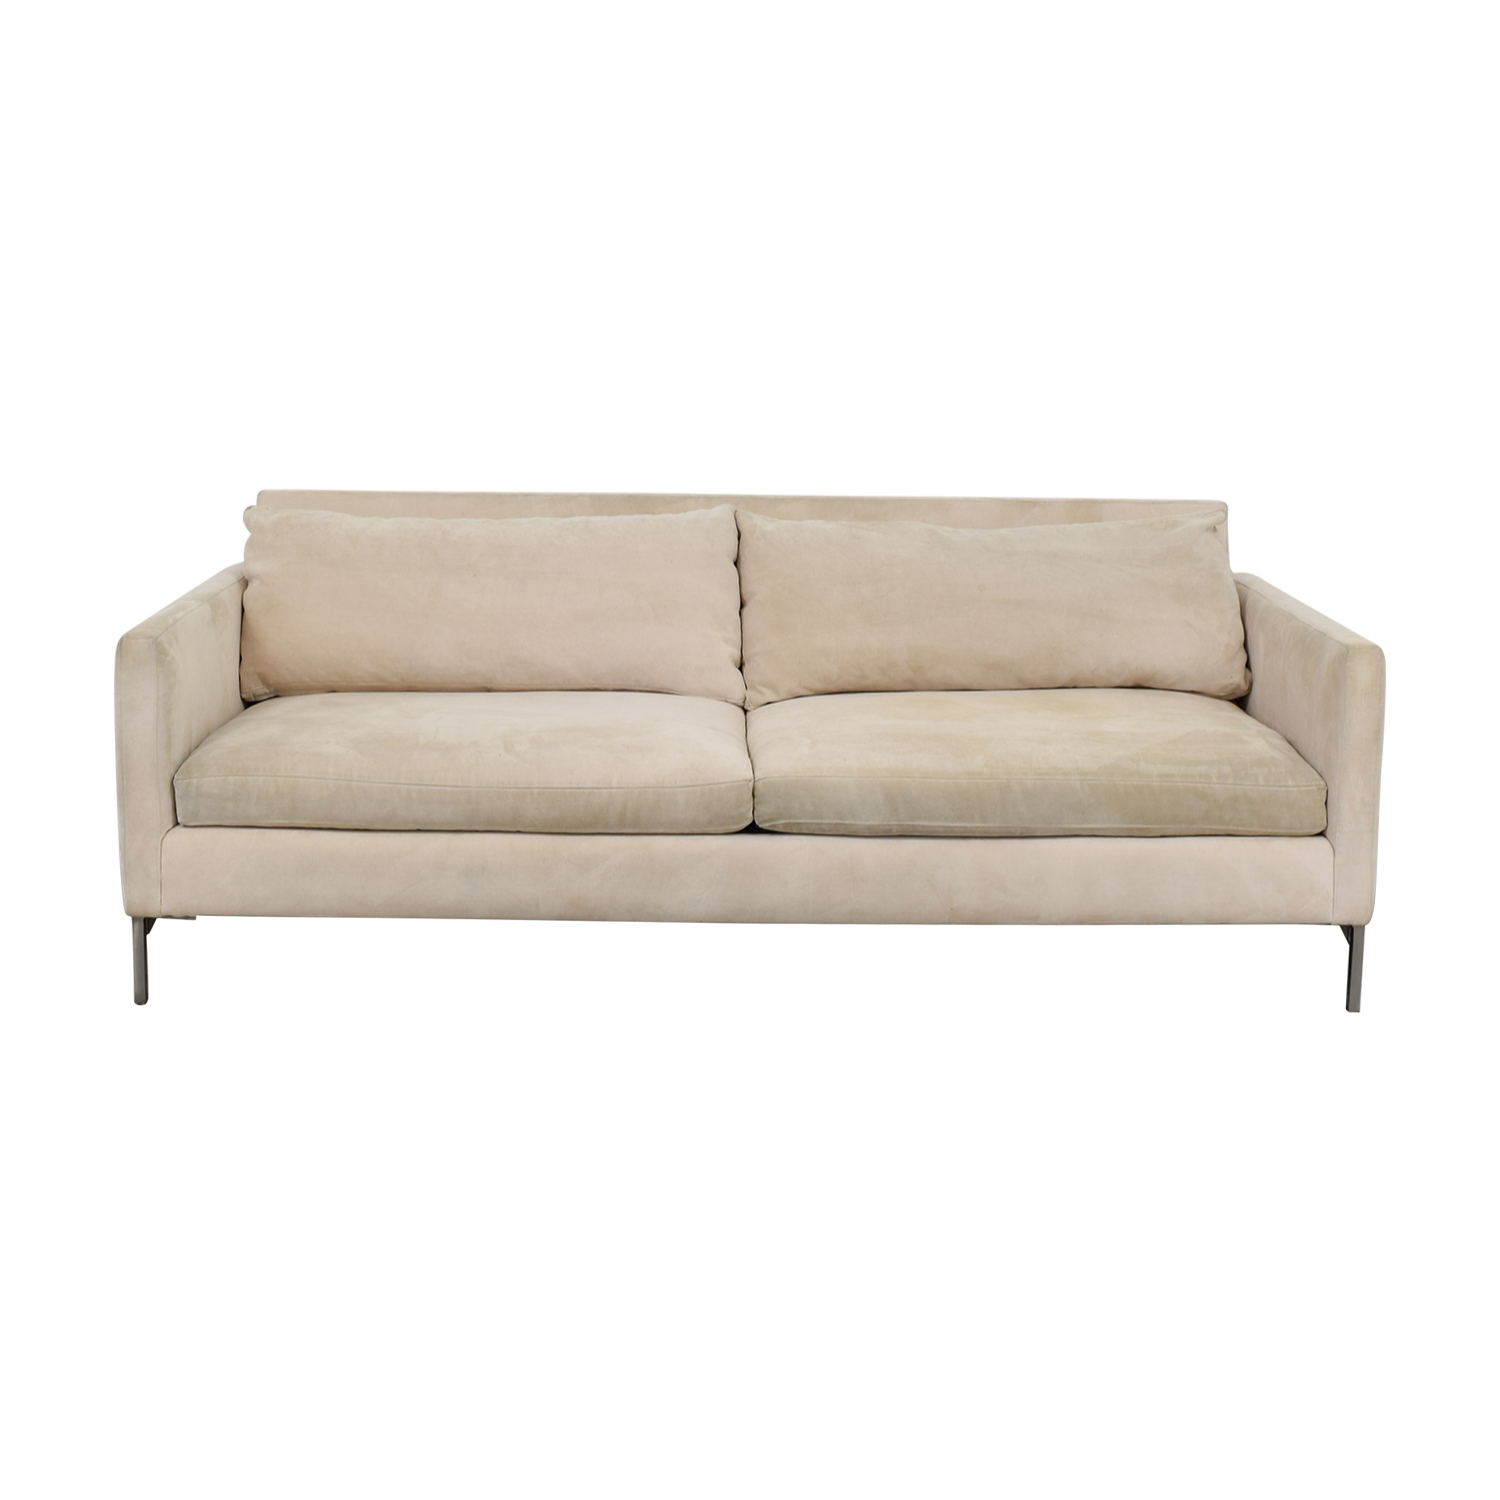 Buy ABC Carpet U0026 Home Cobble Hill Nolita Beige Sofa ABC Carpet U0026 Home ...